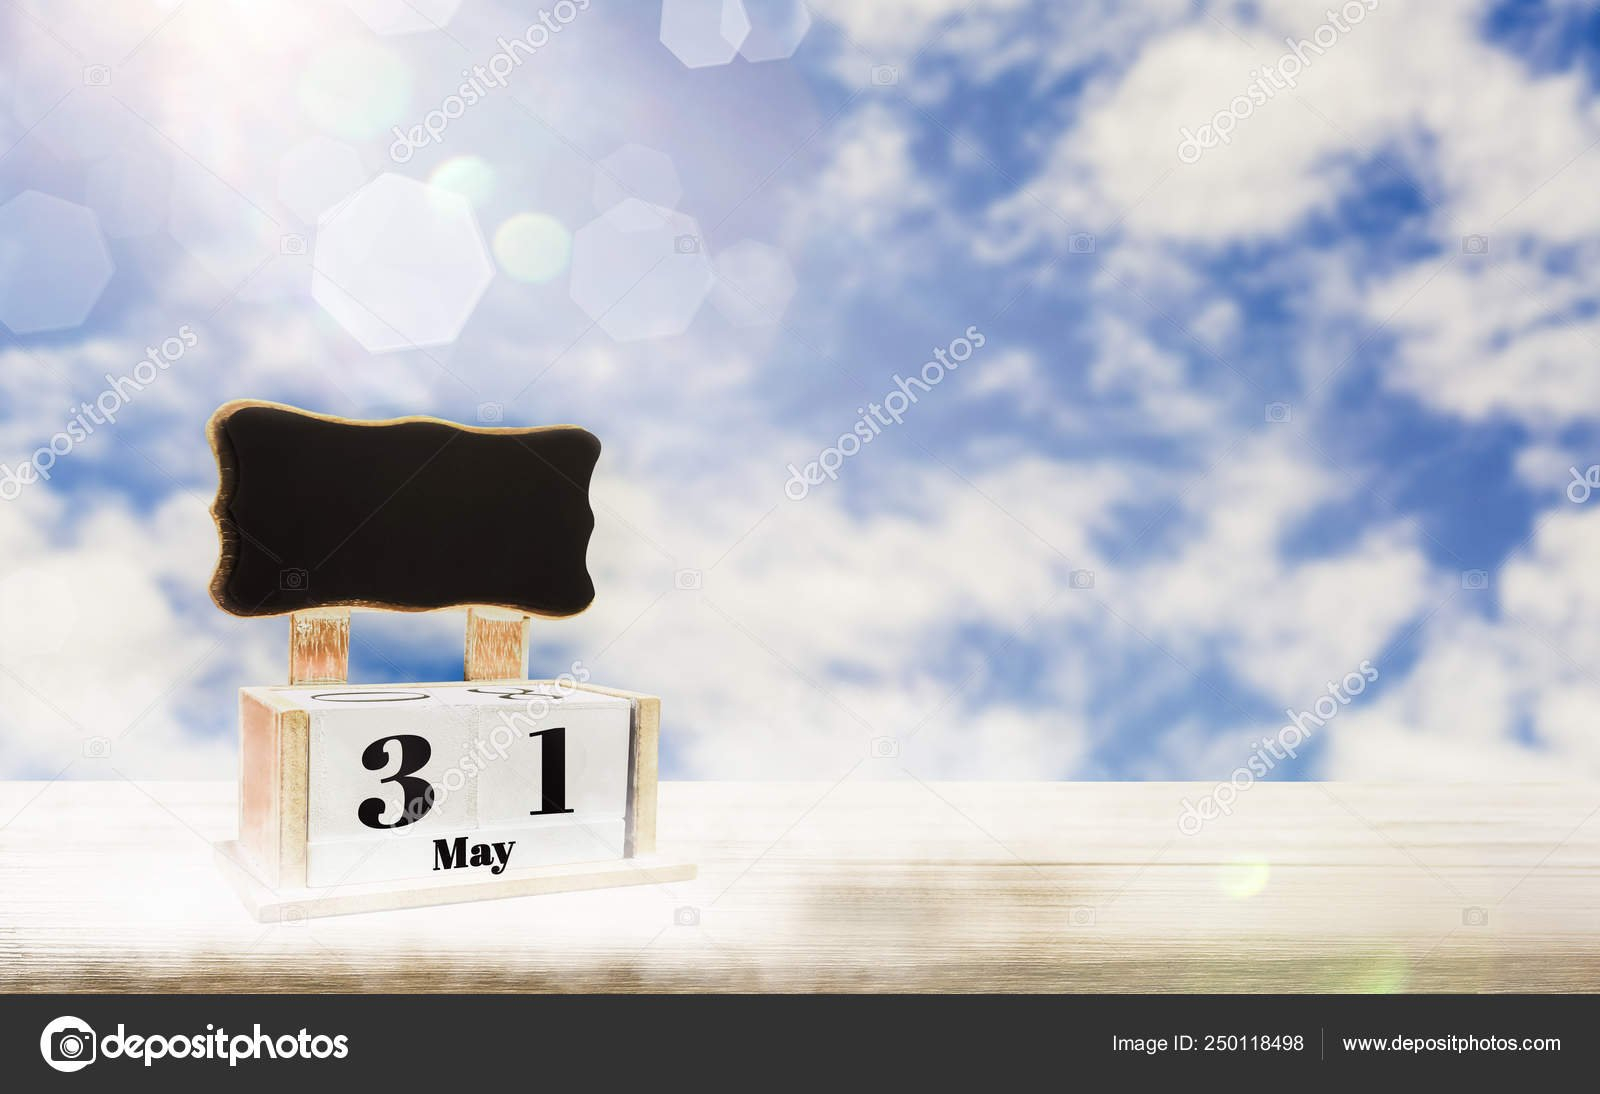 Calendar Box With Blackboard For Entering Text,may 31 Days Image Box Of 31 Days